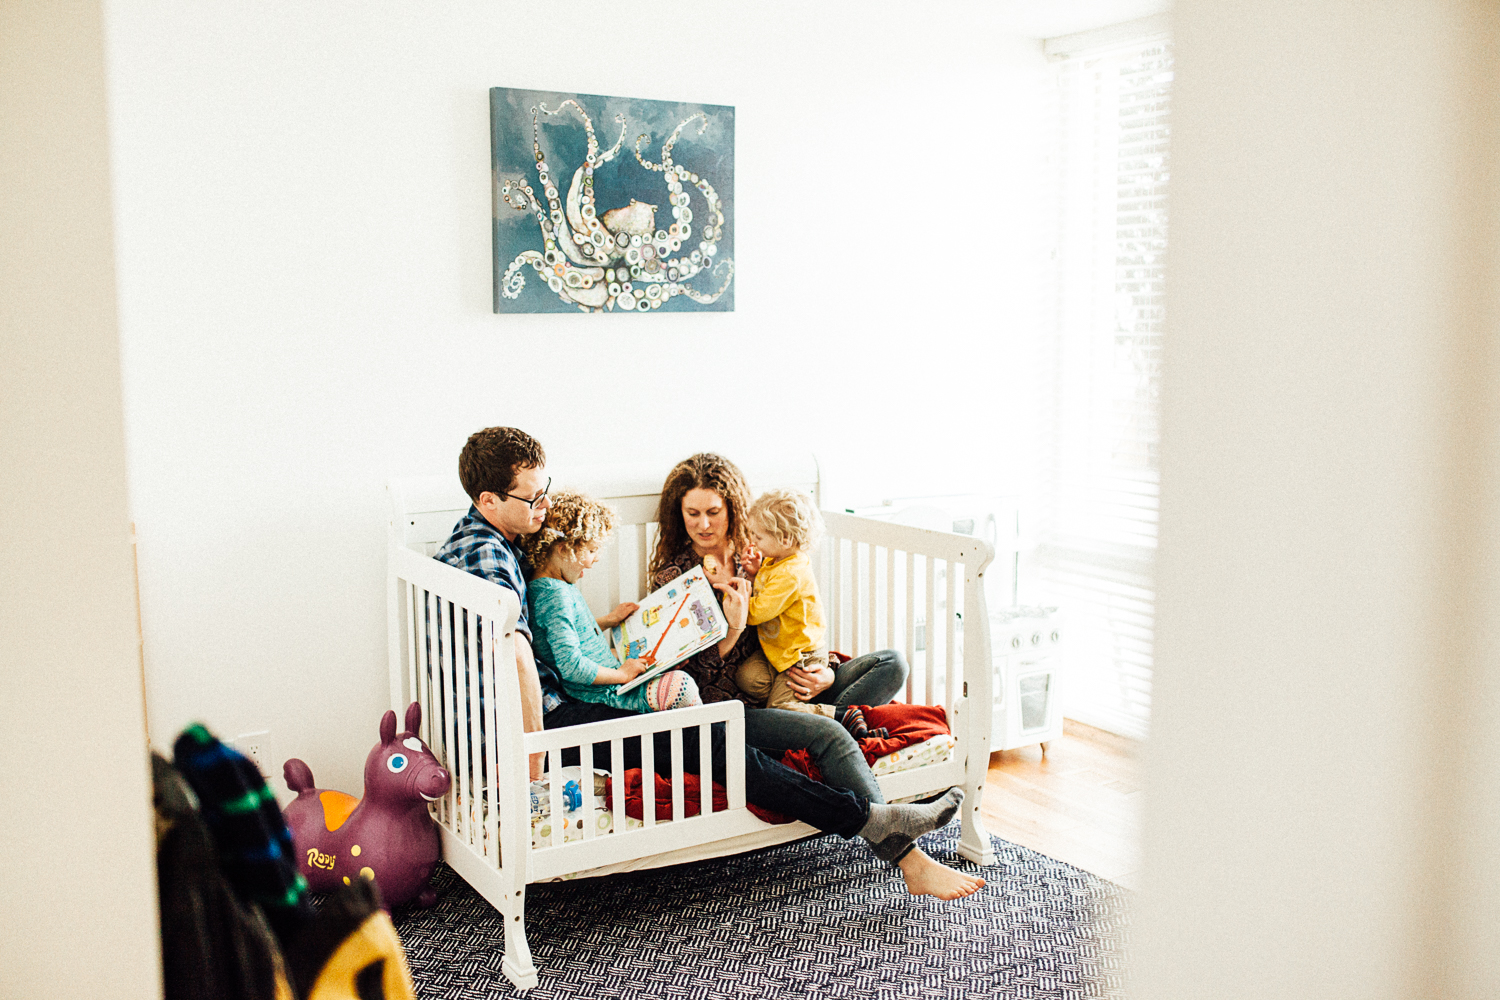 family-reading-book-on-bed-at-home-lifestyle-photography-slc-utah